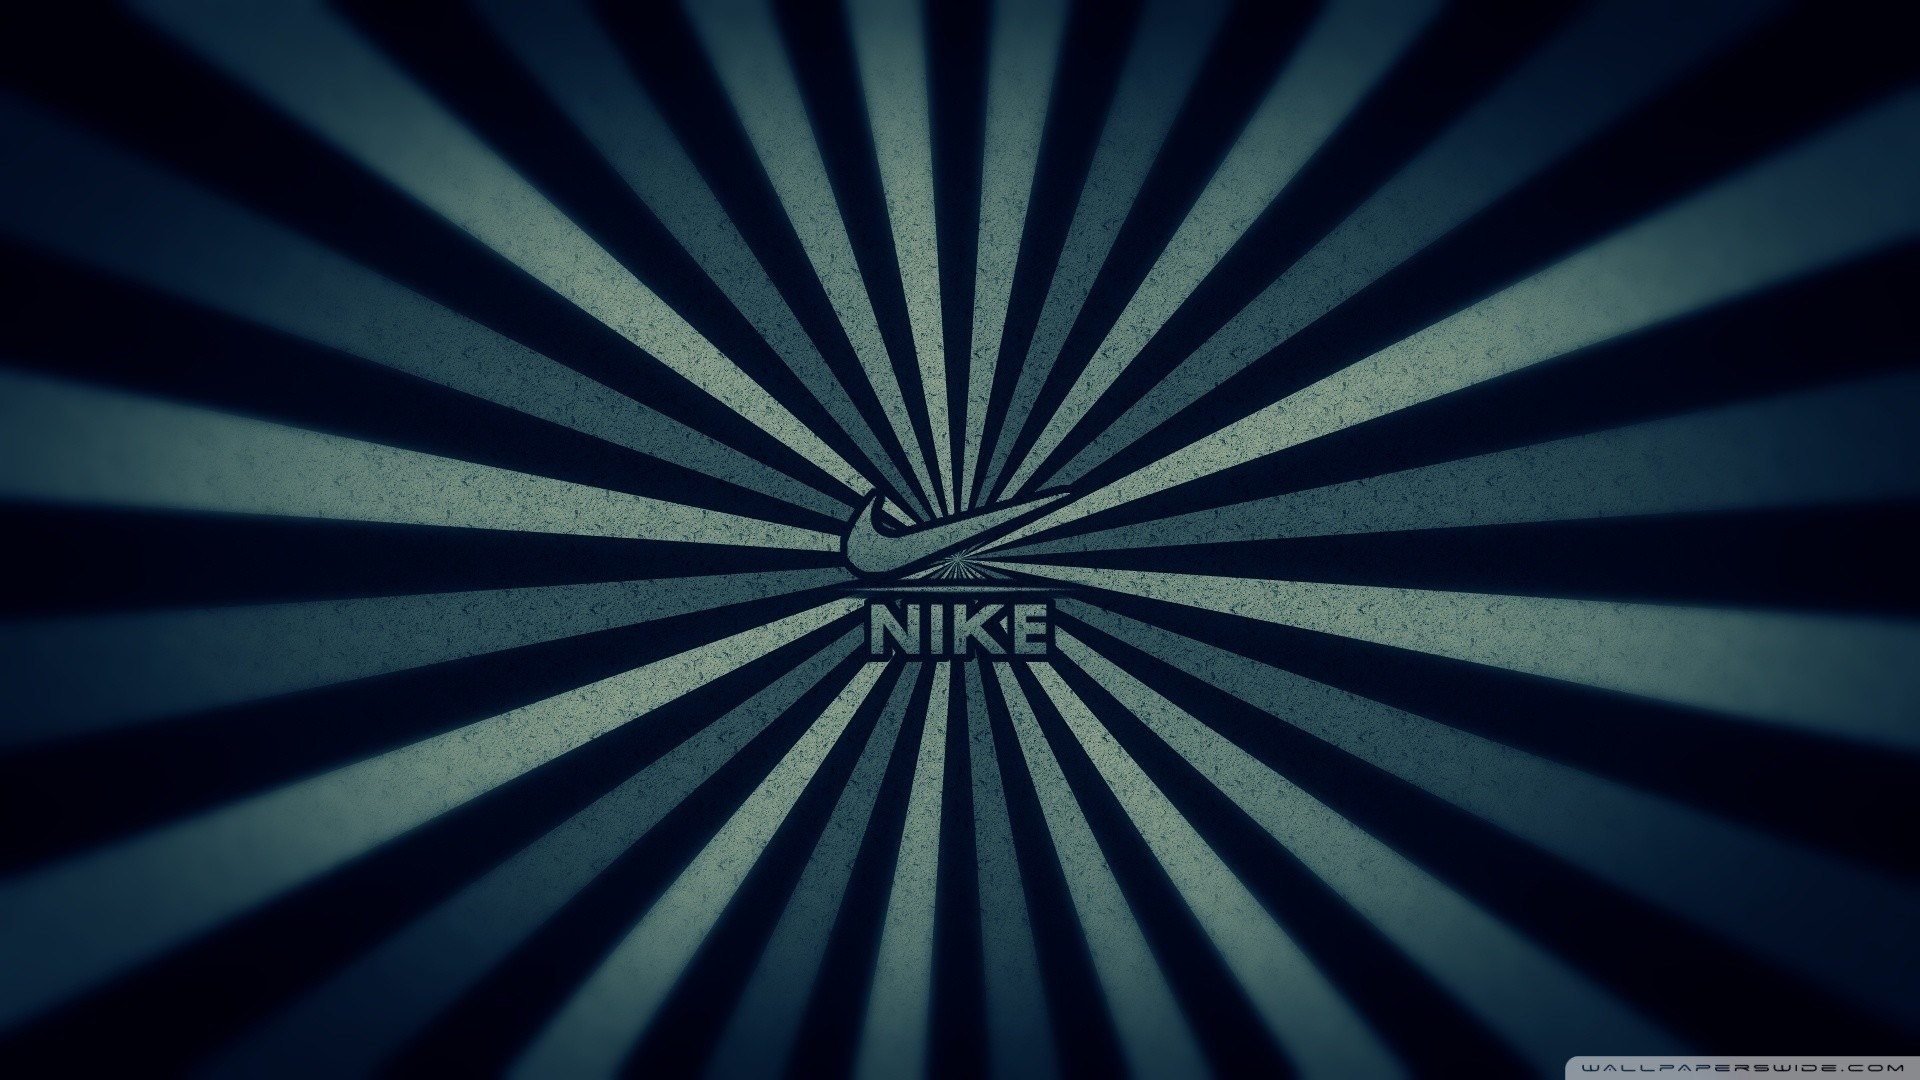 Nike Hd Wallpapers 69 Background Pictures